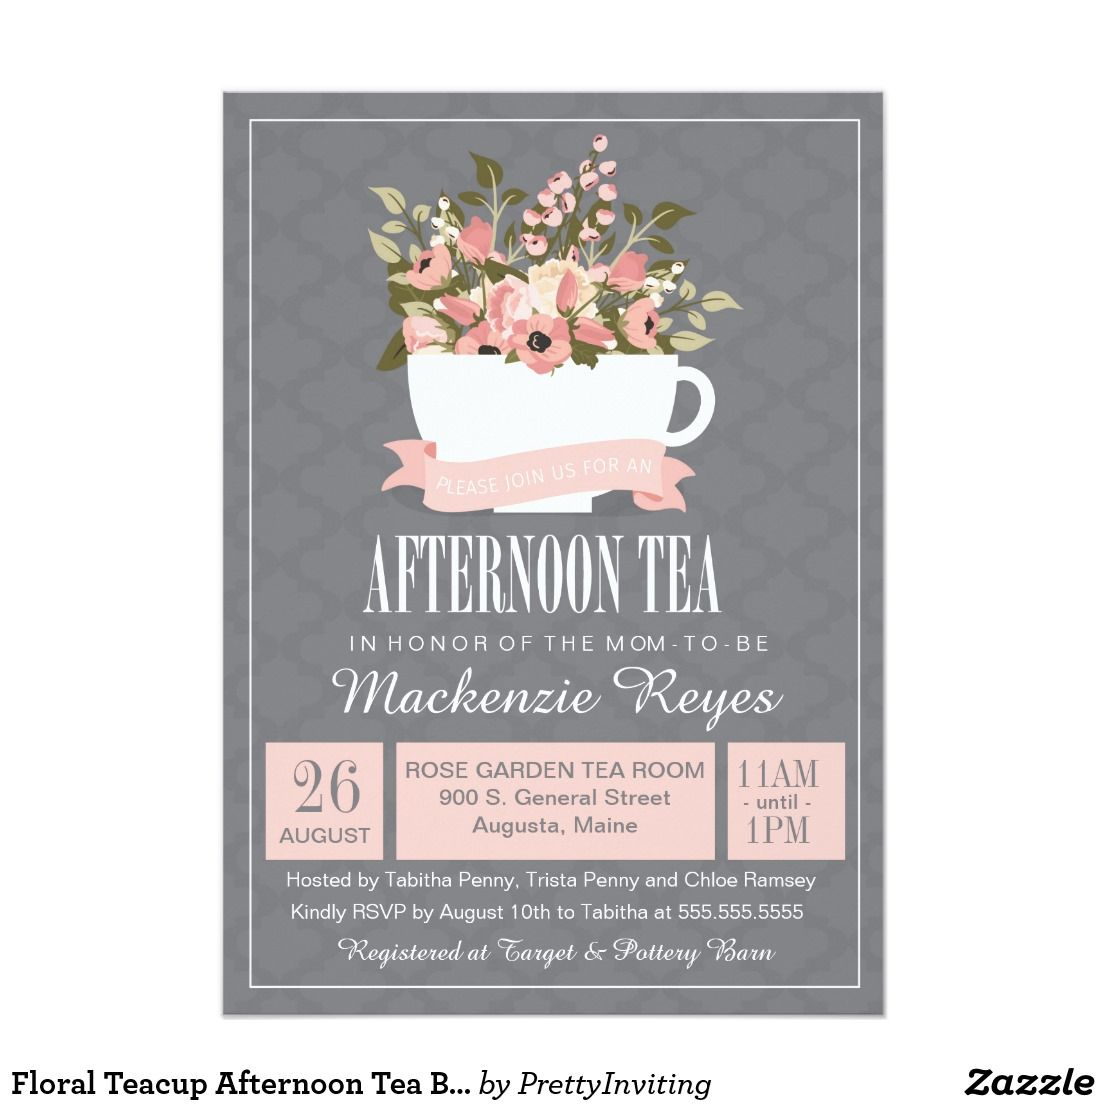 Floral Teacup Afternoon Tea Baby or Bridal Shower | Ma 60ste | Pinterest